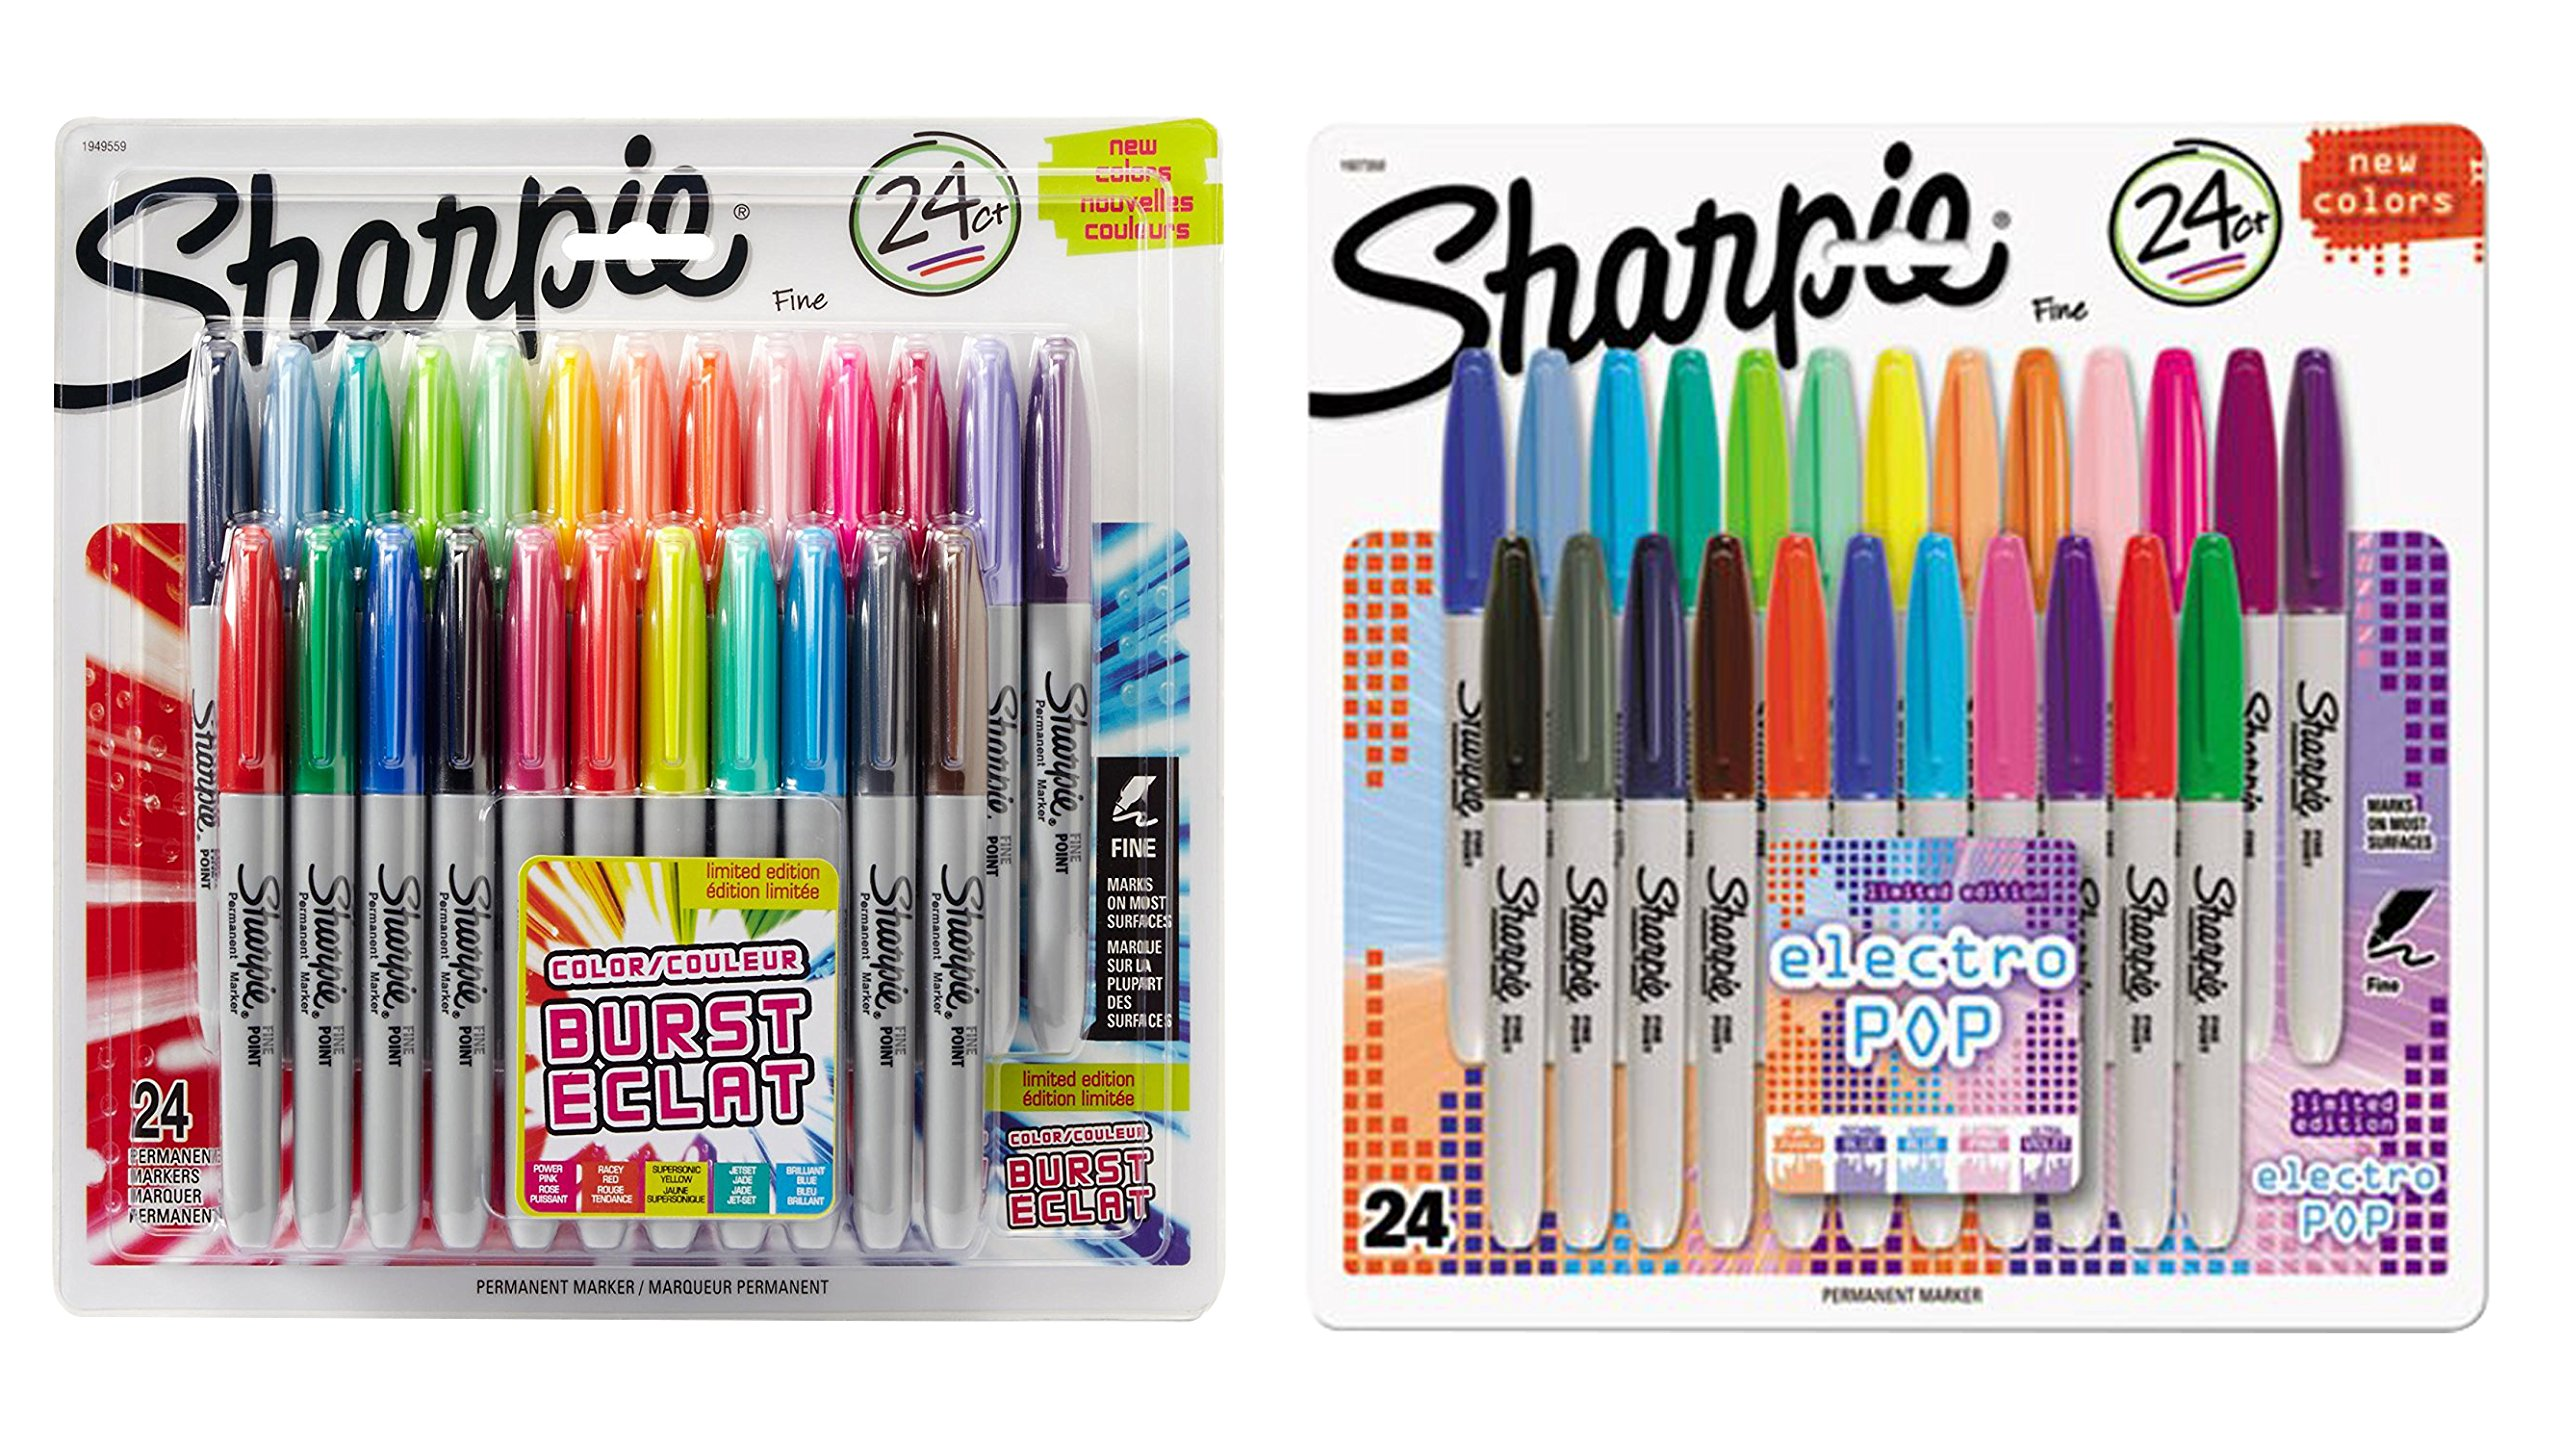 Sharpie Color Burst Permanent Markers, Fine Point, Assorted Colors, 24-Count, With a Pack of 24 Sharpie Electro Pop Permanent Markers, Fine Point by Sharpie (Image #2)